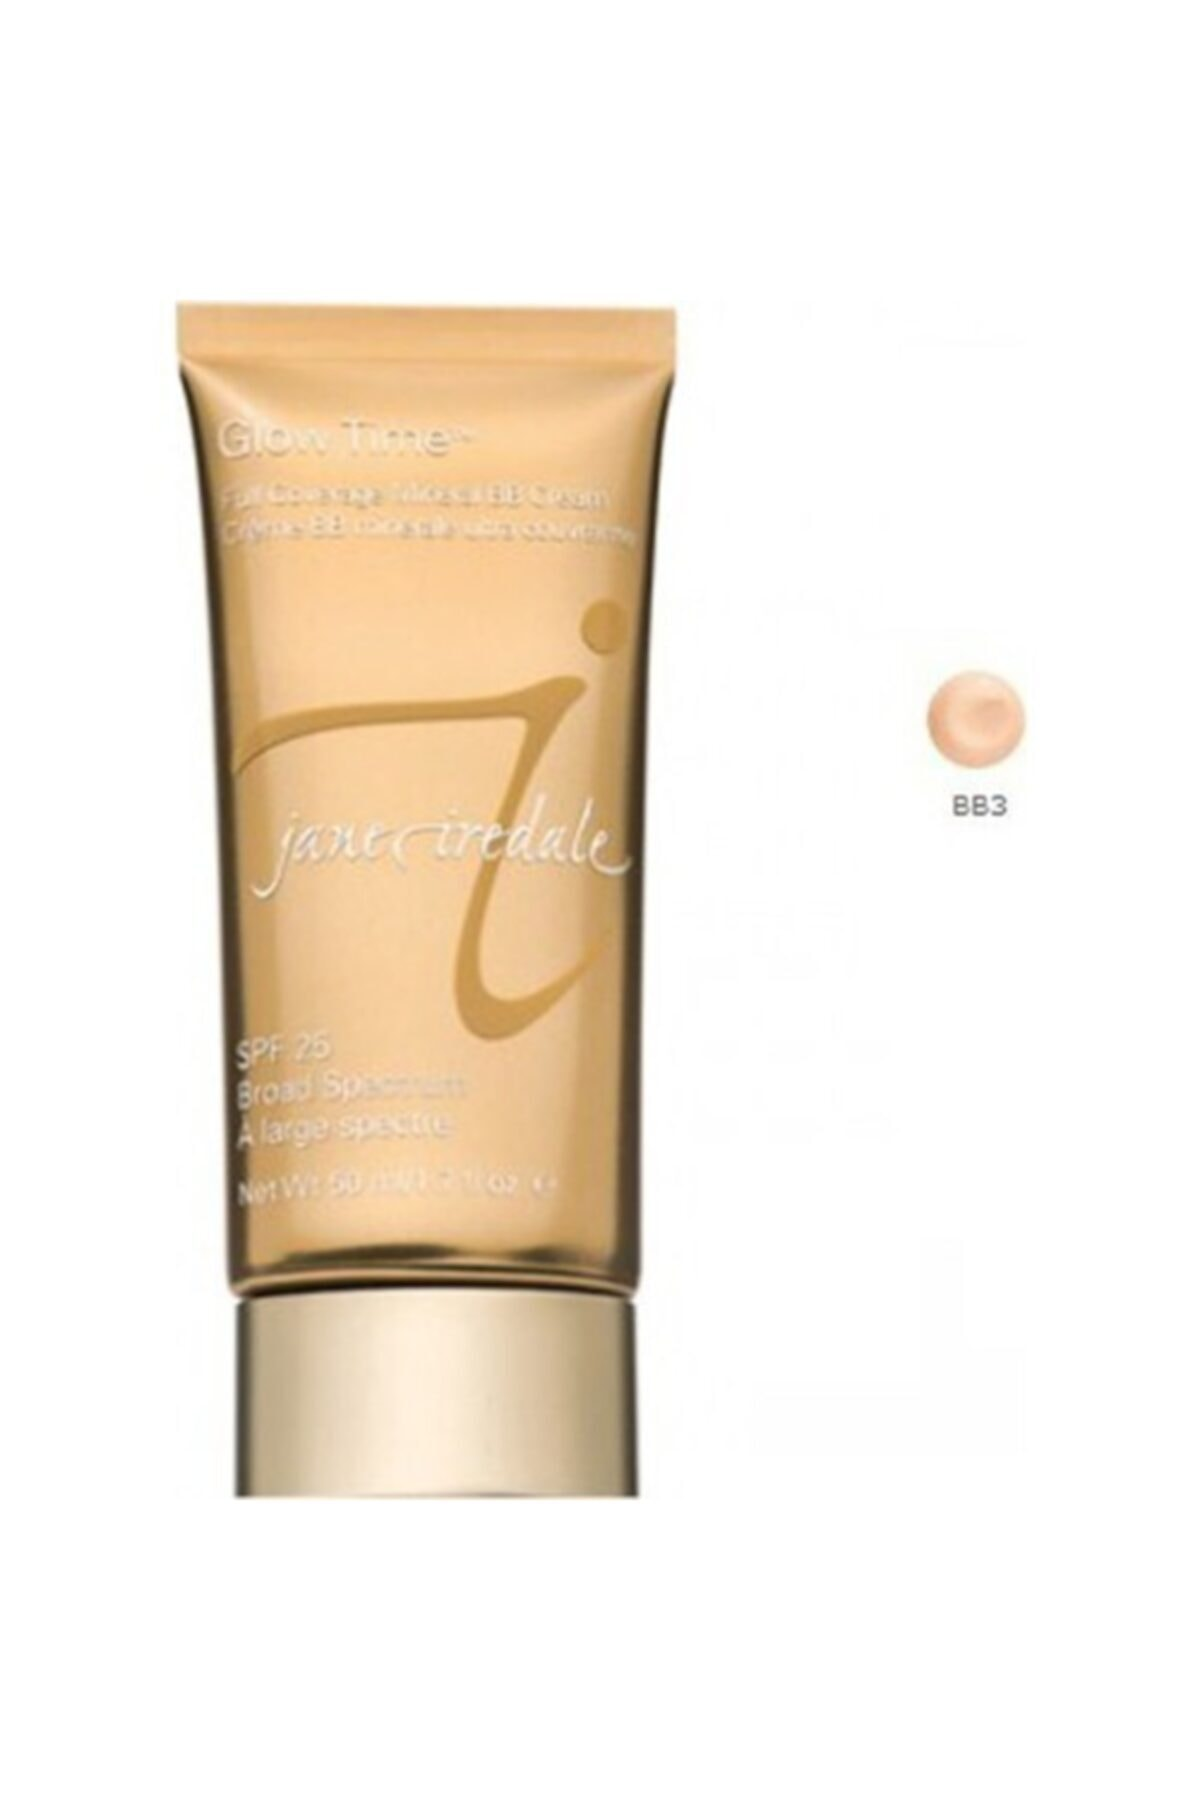 Jane Iredale Glow Time Mineral Cream Spf 25 Bb3 50 ml 1